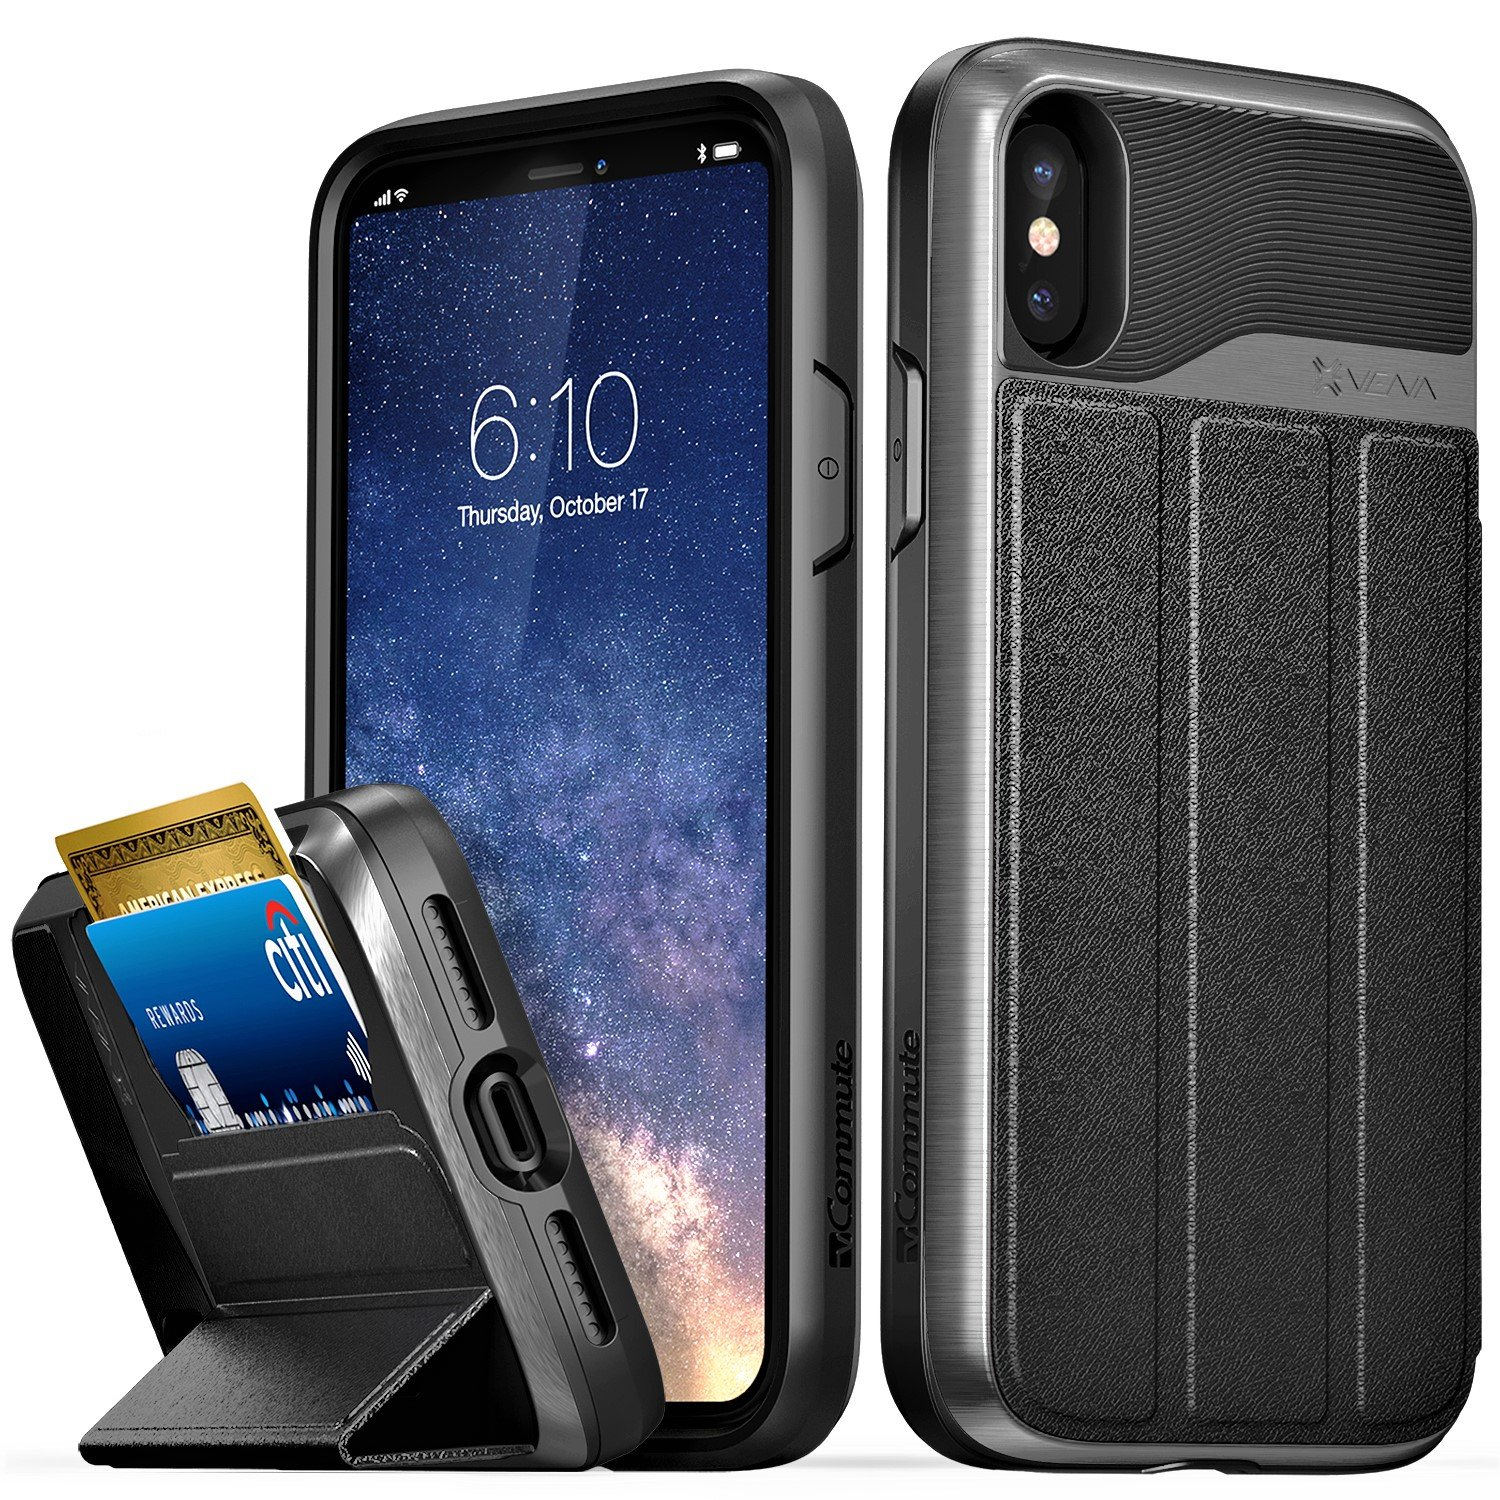 iPhone X Wallet Case, Vena [vCommute][Military Grade Drop Protection] Flip Leather Cover Card Slot Holder with KickStand for Apple iPhone X / 10 (Space Gray/Black)